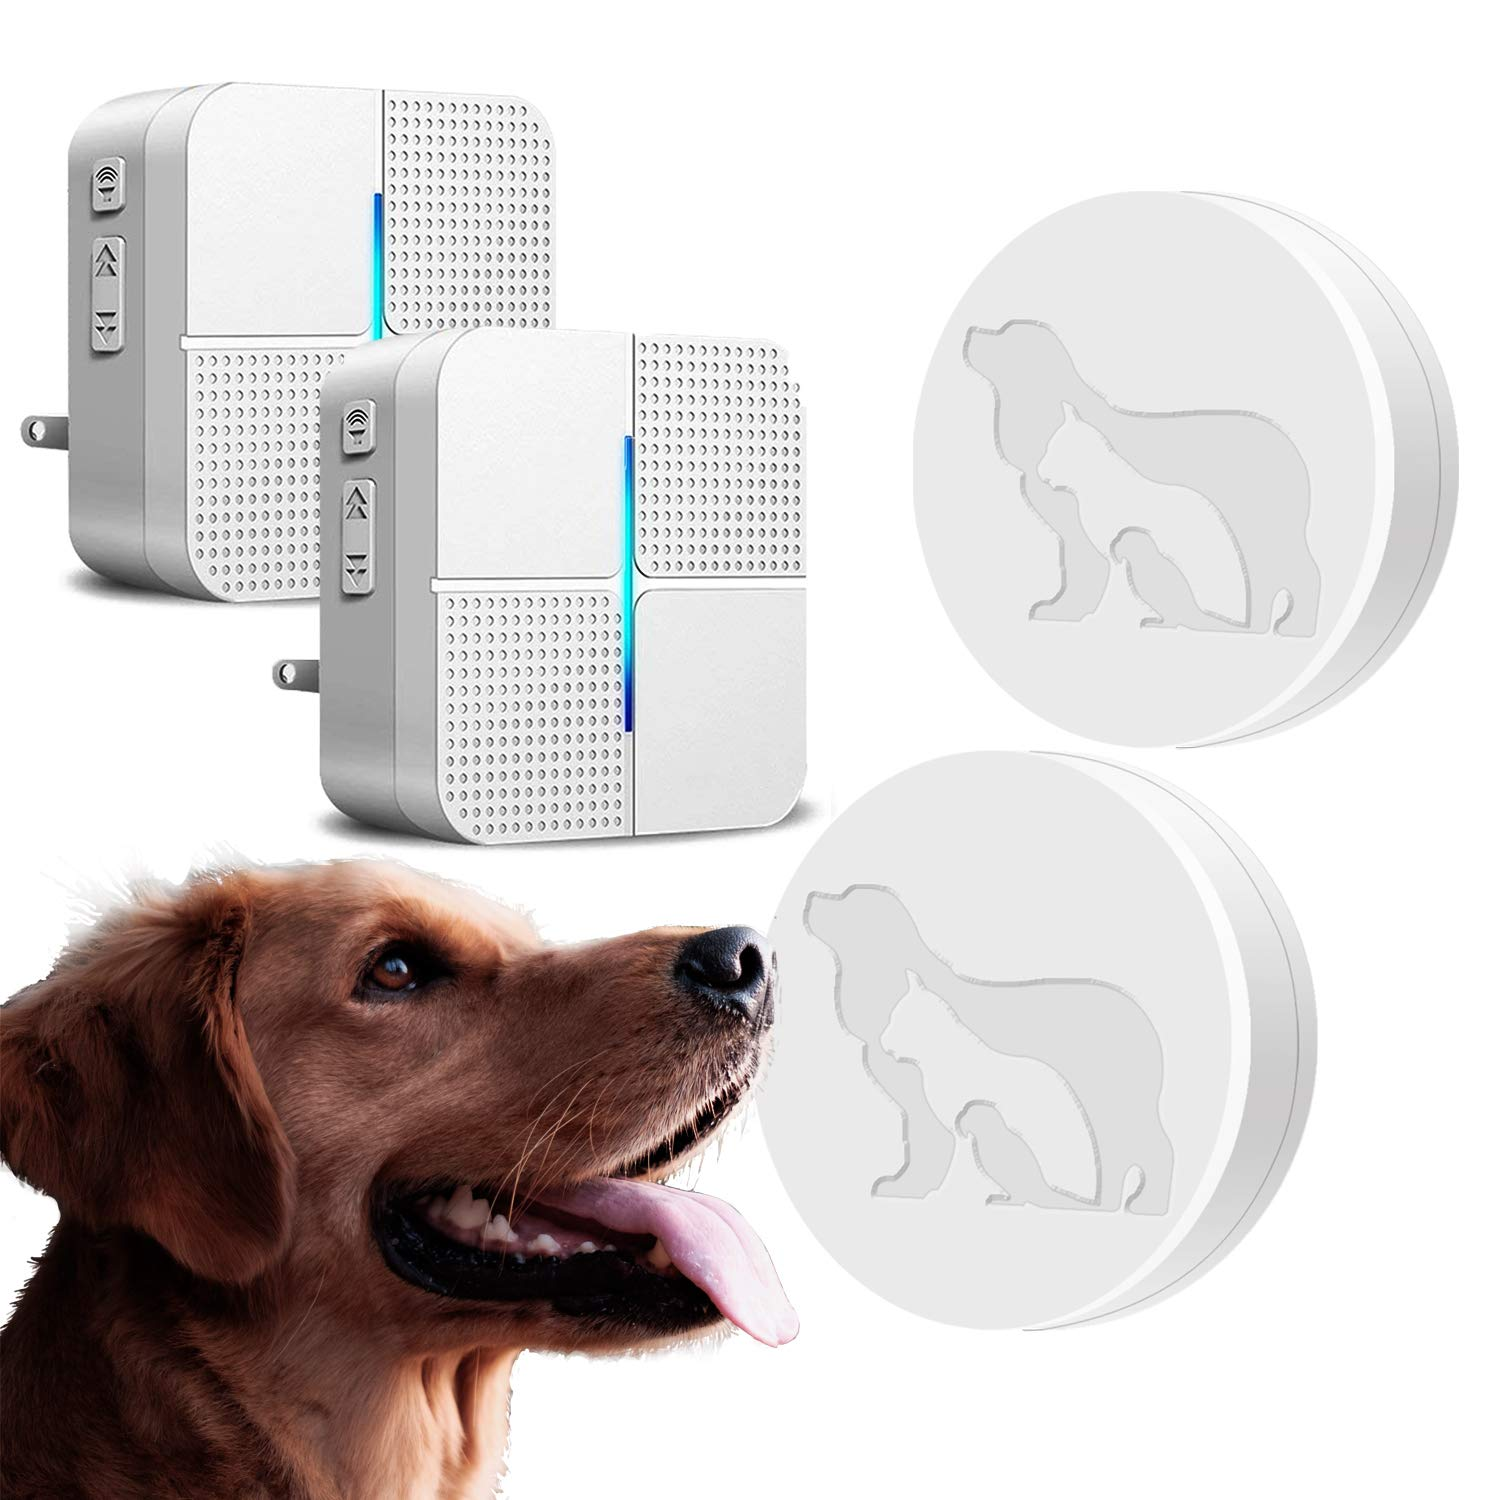 Dog Wireless Door Bell (2 Receiver & 2 Transmitters) - JOYSAE Upgrade Doggie Doorbell Chime for Potty Training with Touch Button Press Waterproof and Greater Surface Area by JOYSAE